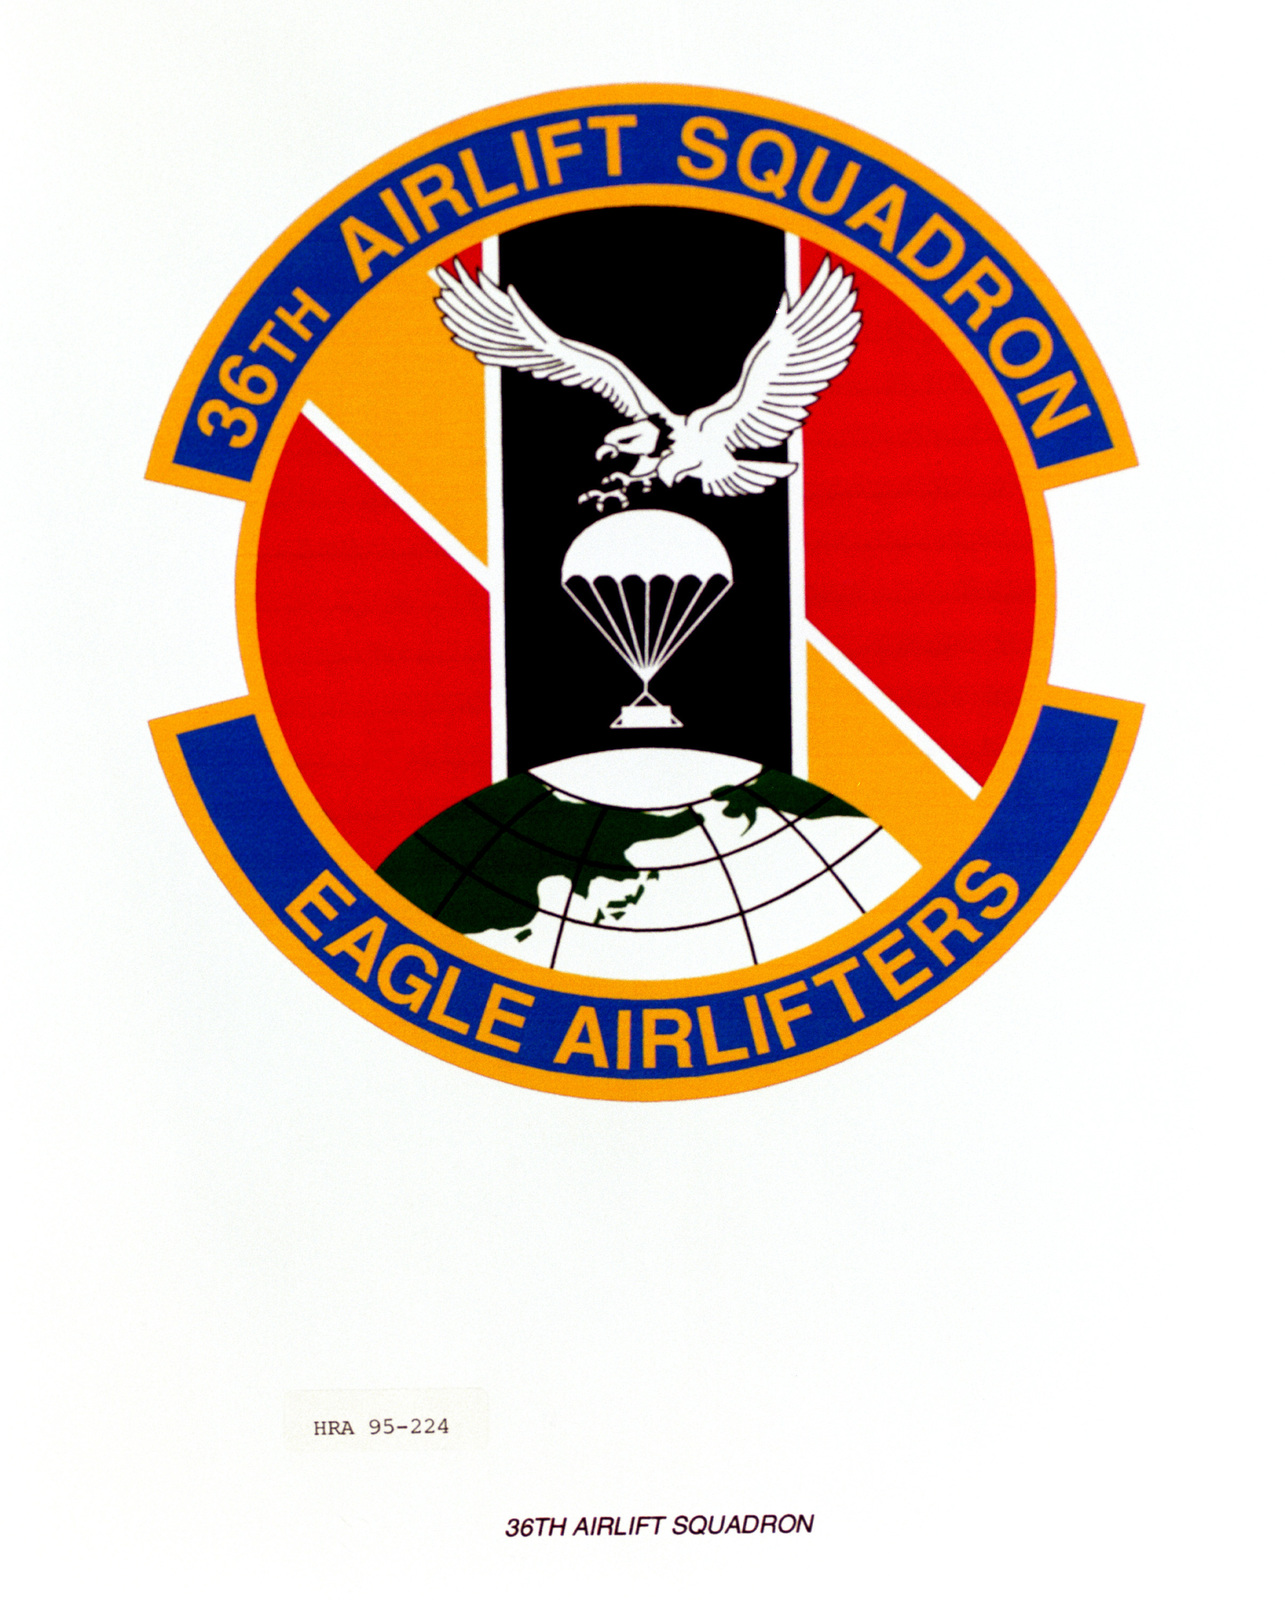 Approved Insignia for the 36th Airlift Squadron. Exact Date Shot Unknown